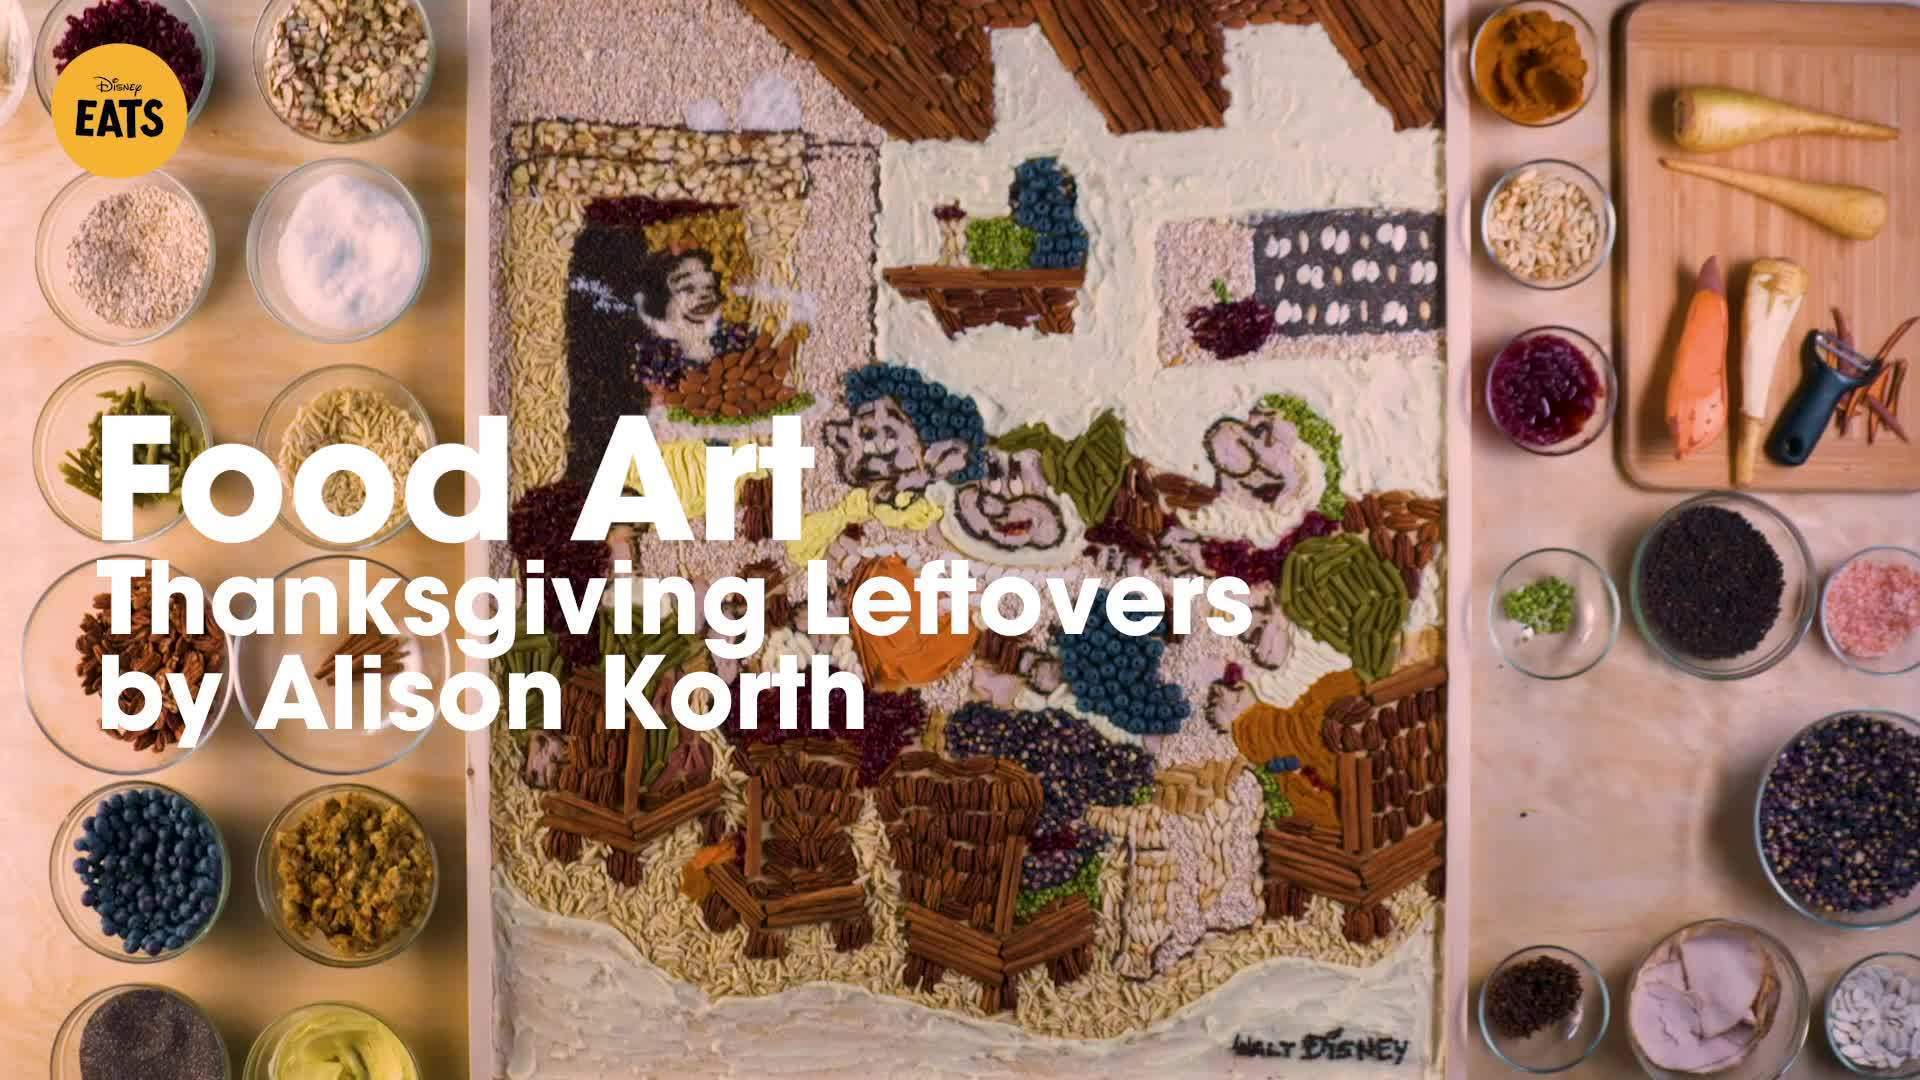 Snow White and the Seven Dwarfs Thanksgiving Leftover Food Art | Disney Eats